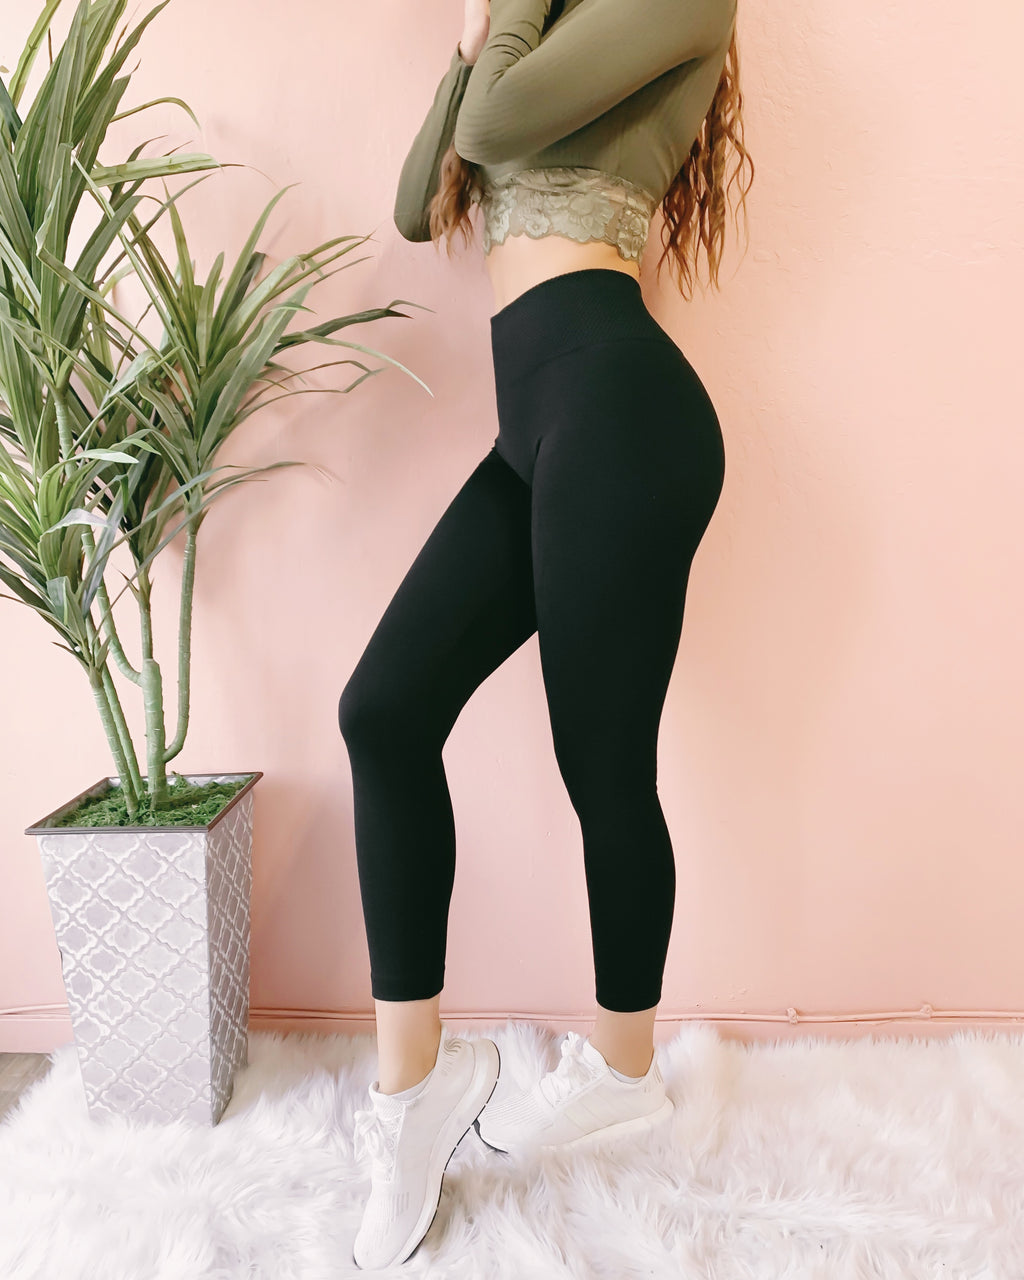 RESTOCKED! SUCK IT IN COMPRESSION HIGH WAIST LEGGINGS